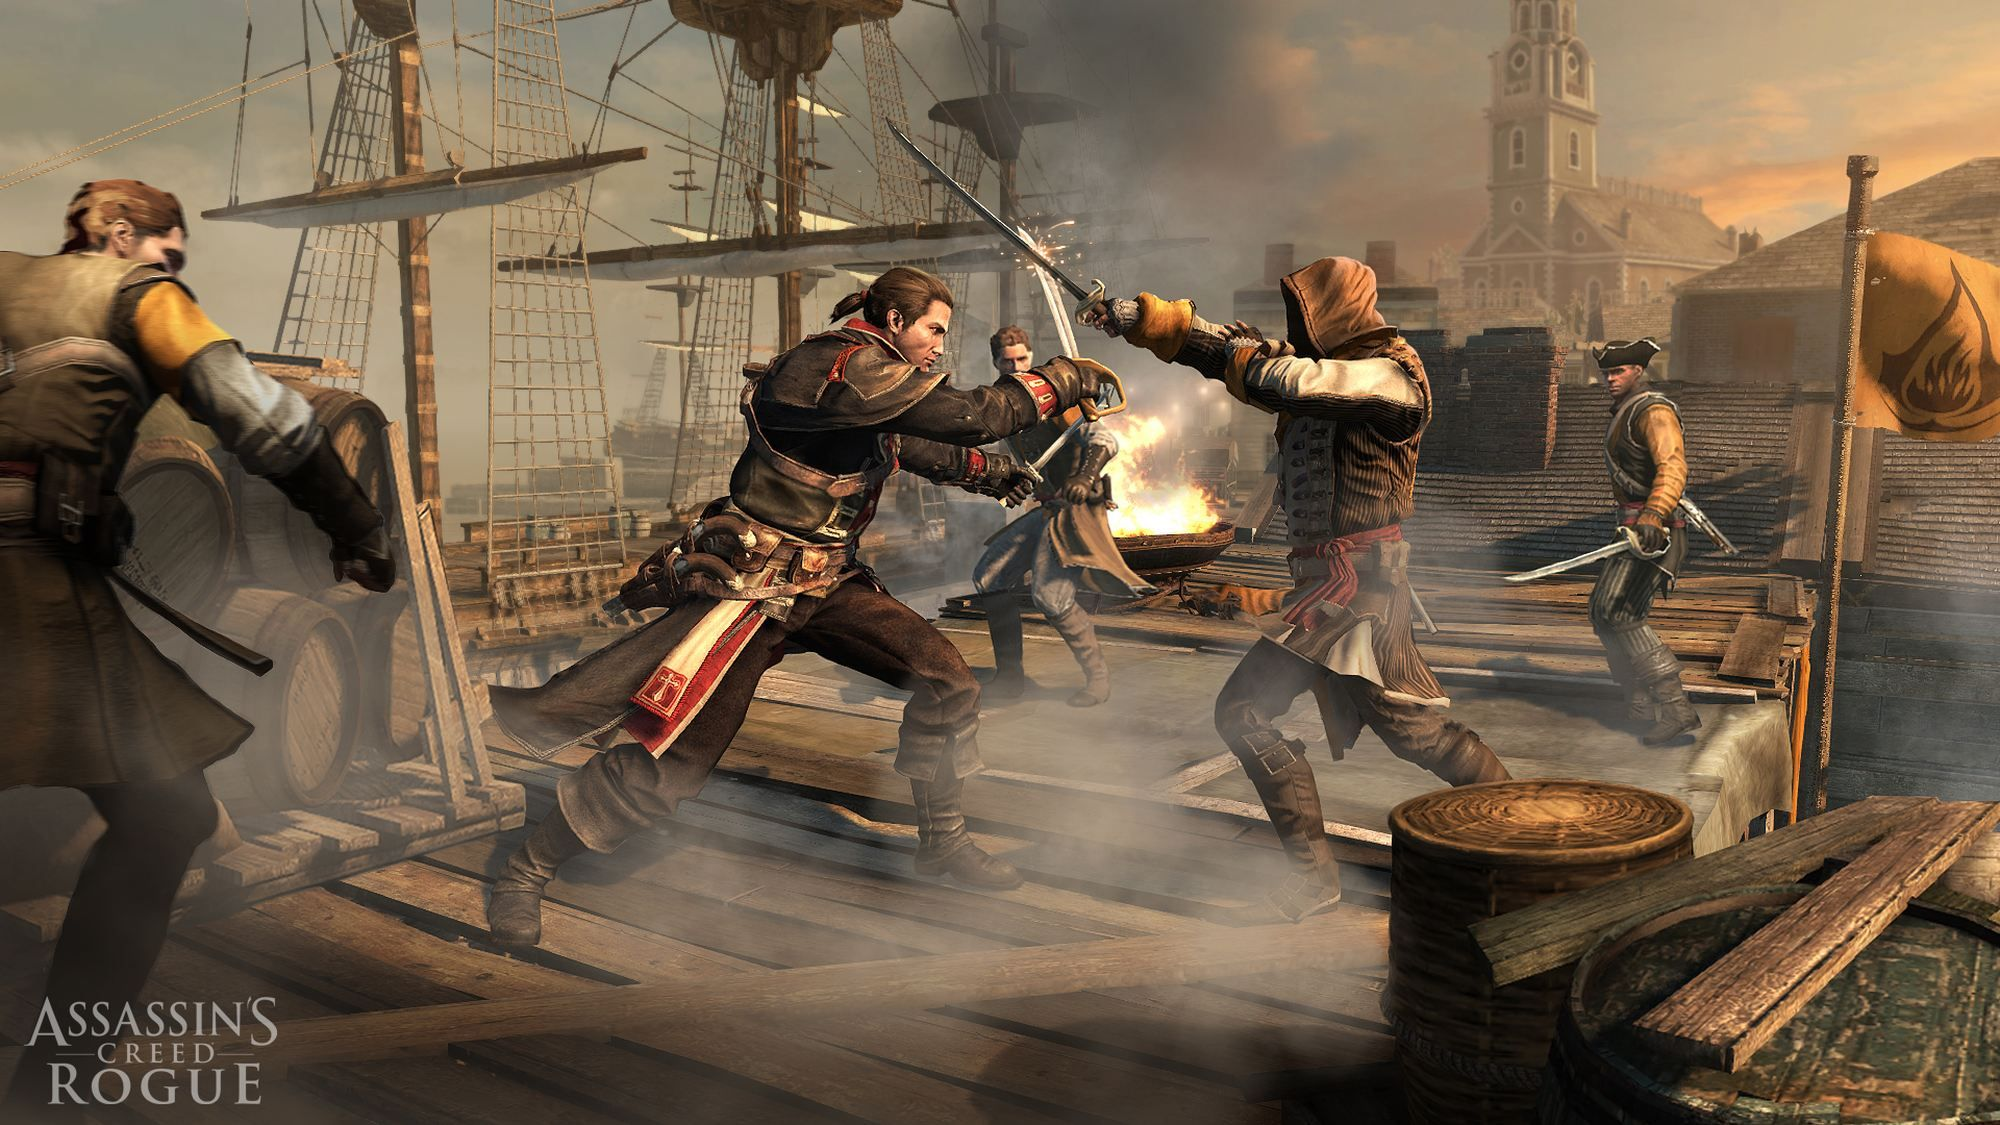 Assassin's Creed Rogue (PC) - 8